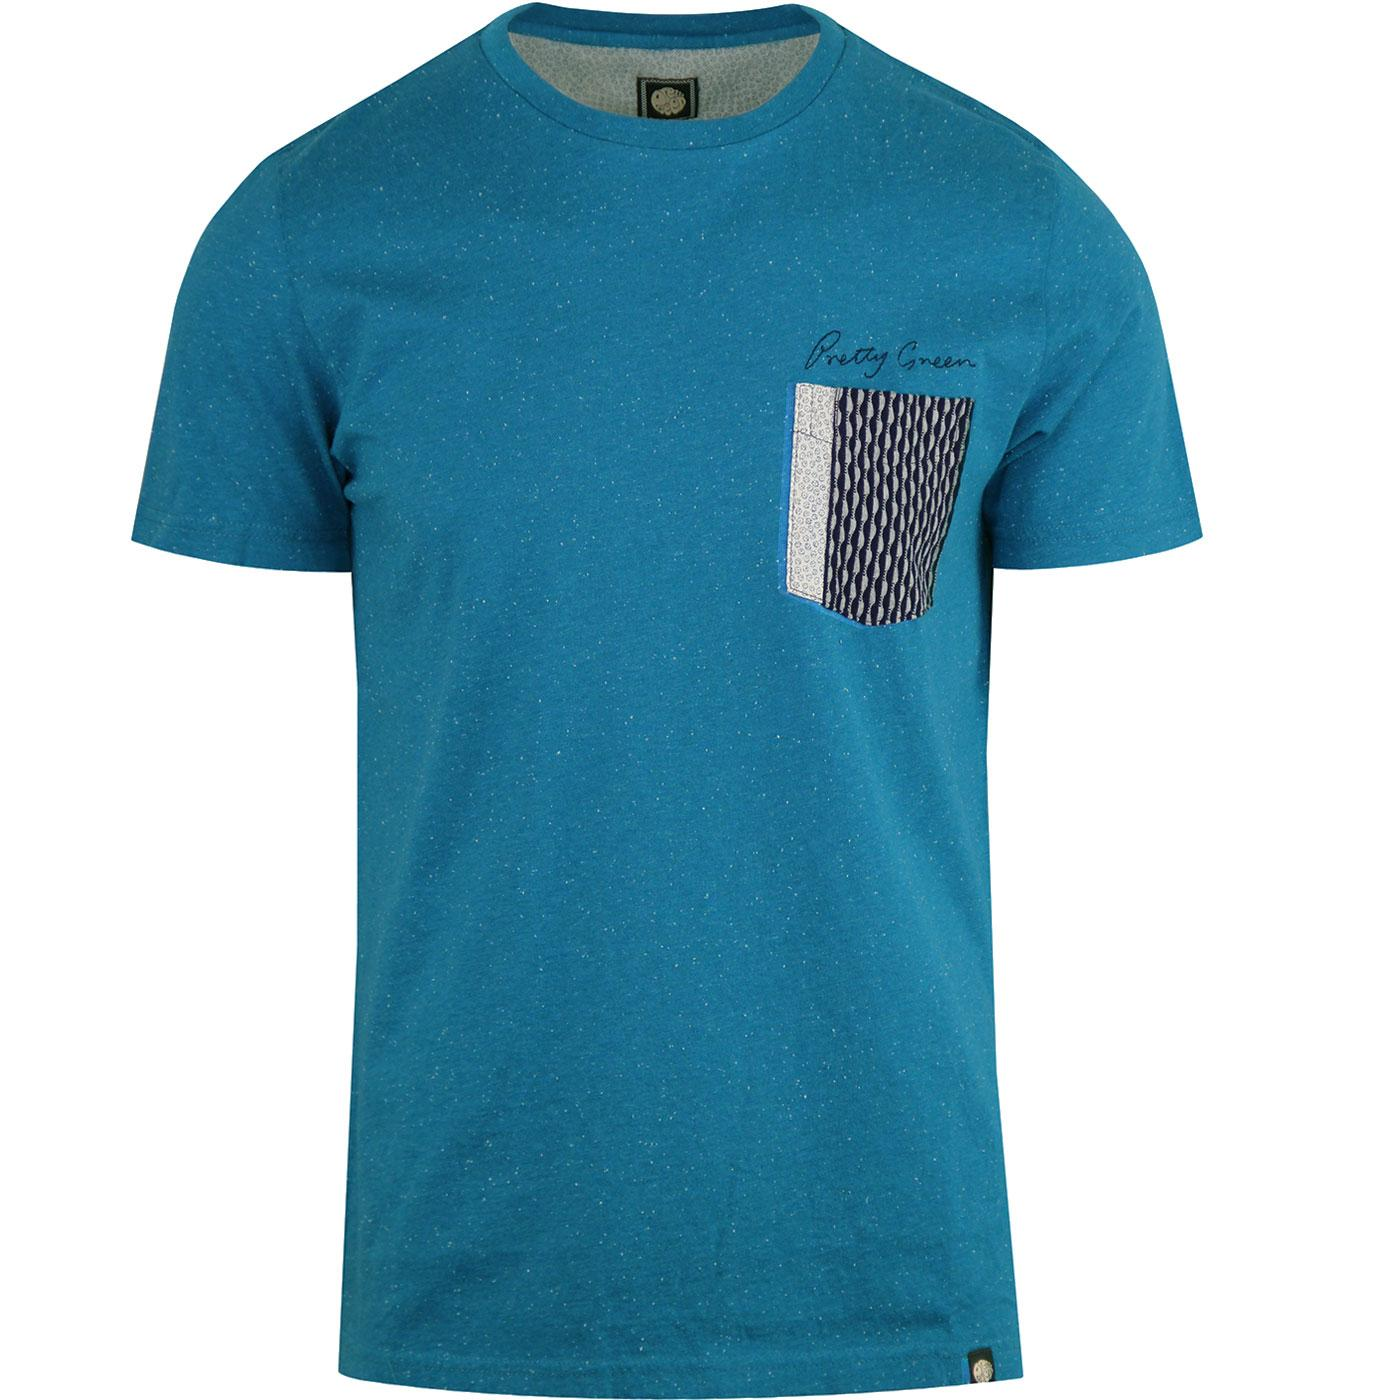 Edgedale PRETTY GREEN Retro Fleck Yarn Pocket Tee